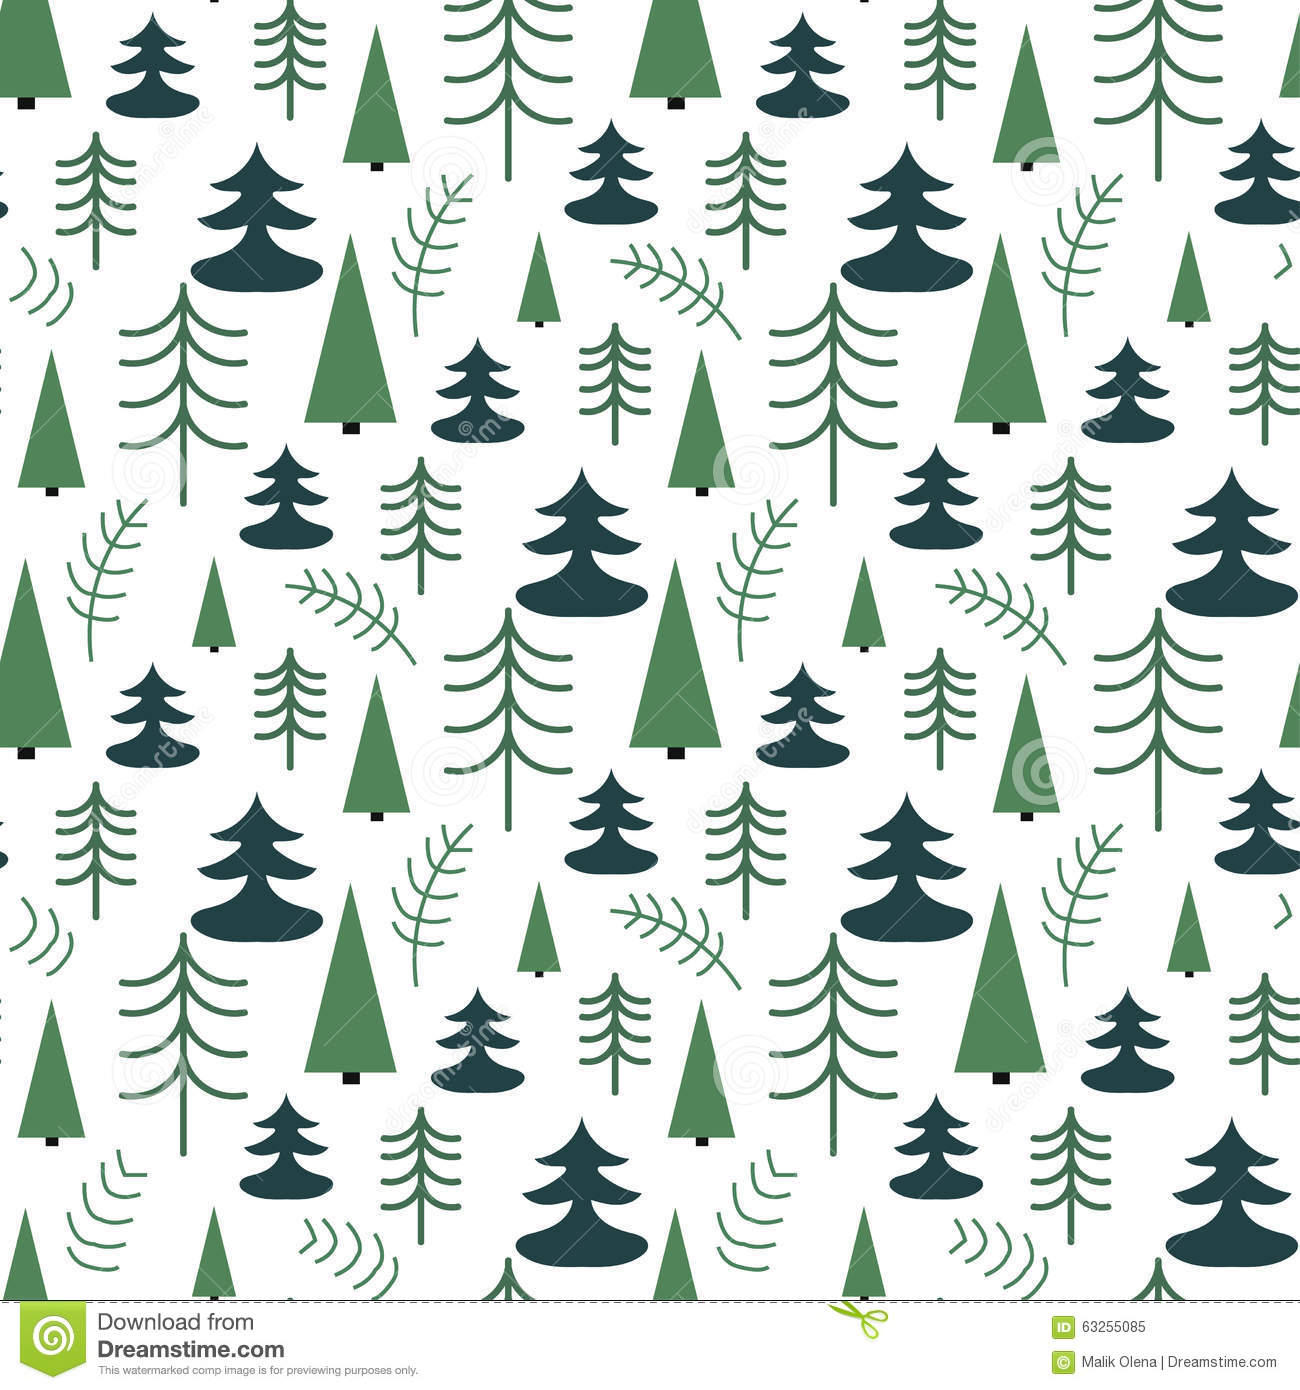 graphic regarding Printable Christmas Wrapping Paper named Seamless Xmas Routine With Trees. Suitable For Wrapping